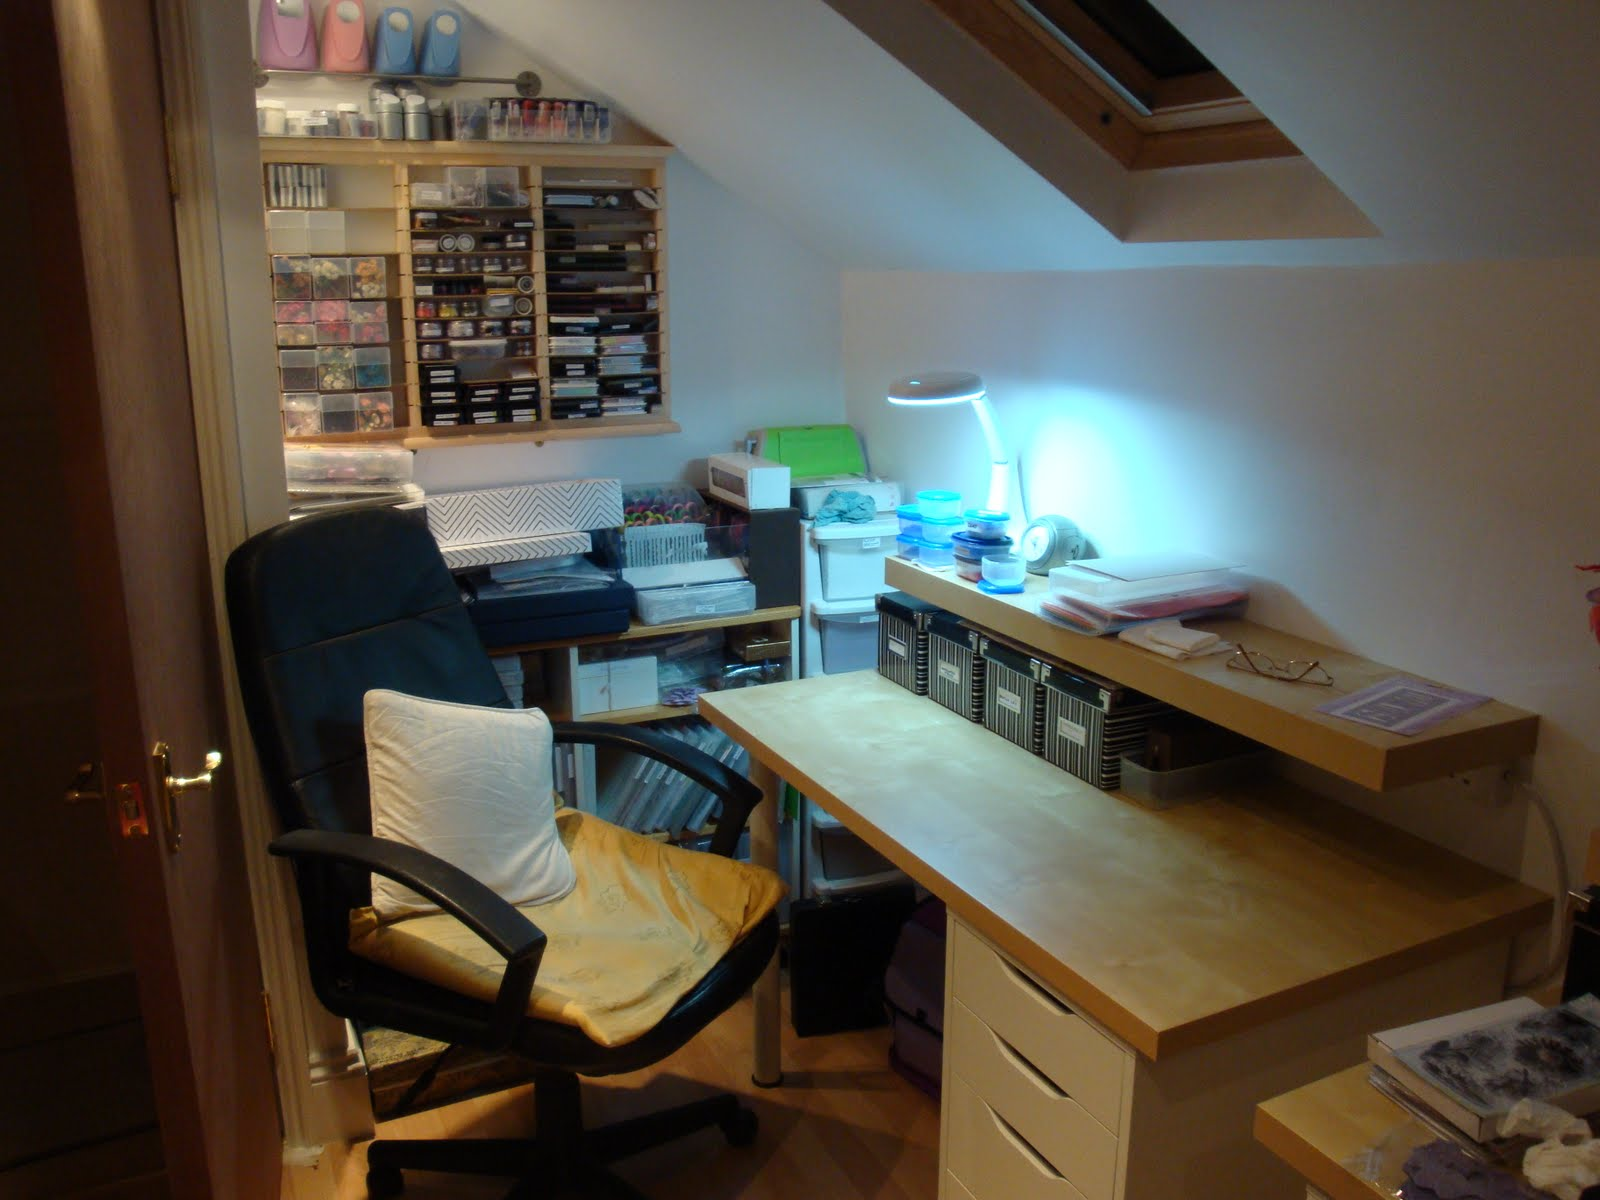 Loft Conversions: Interior Design Ideas for Home Offices ...